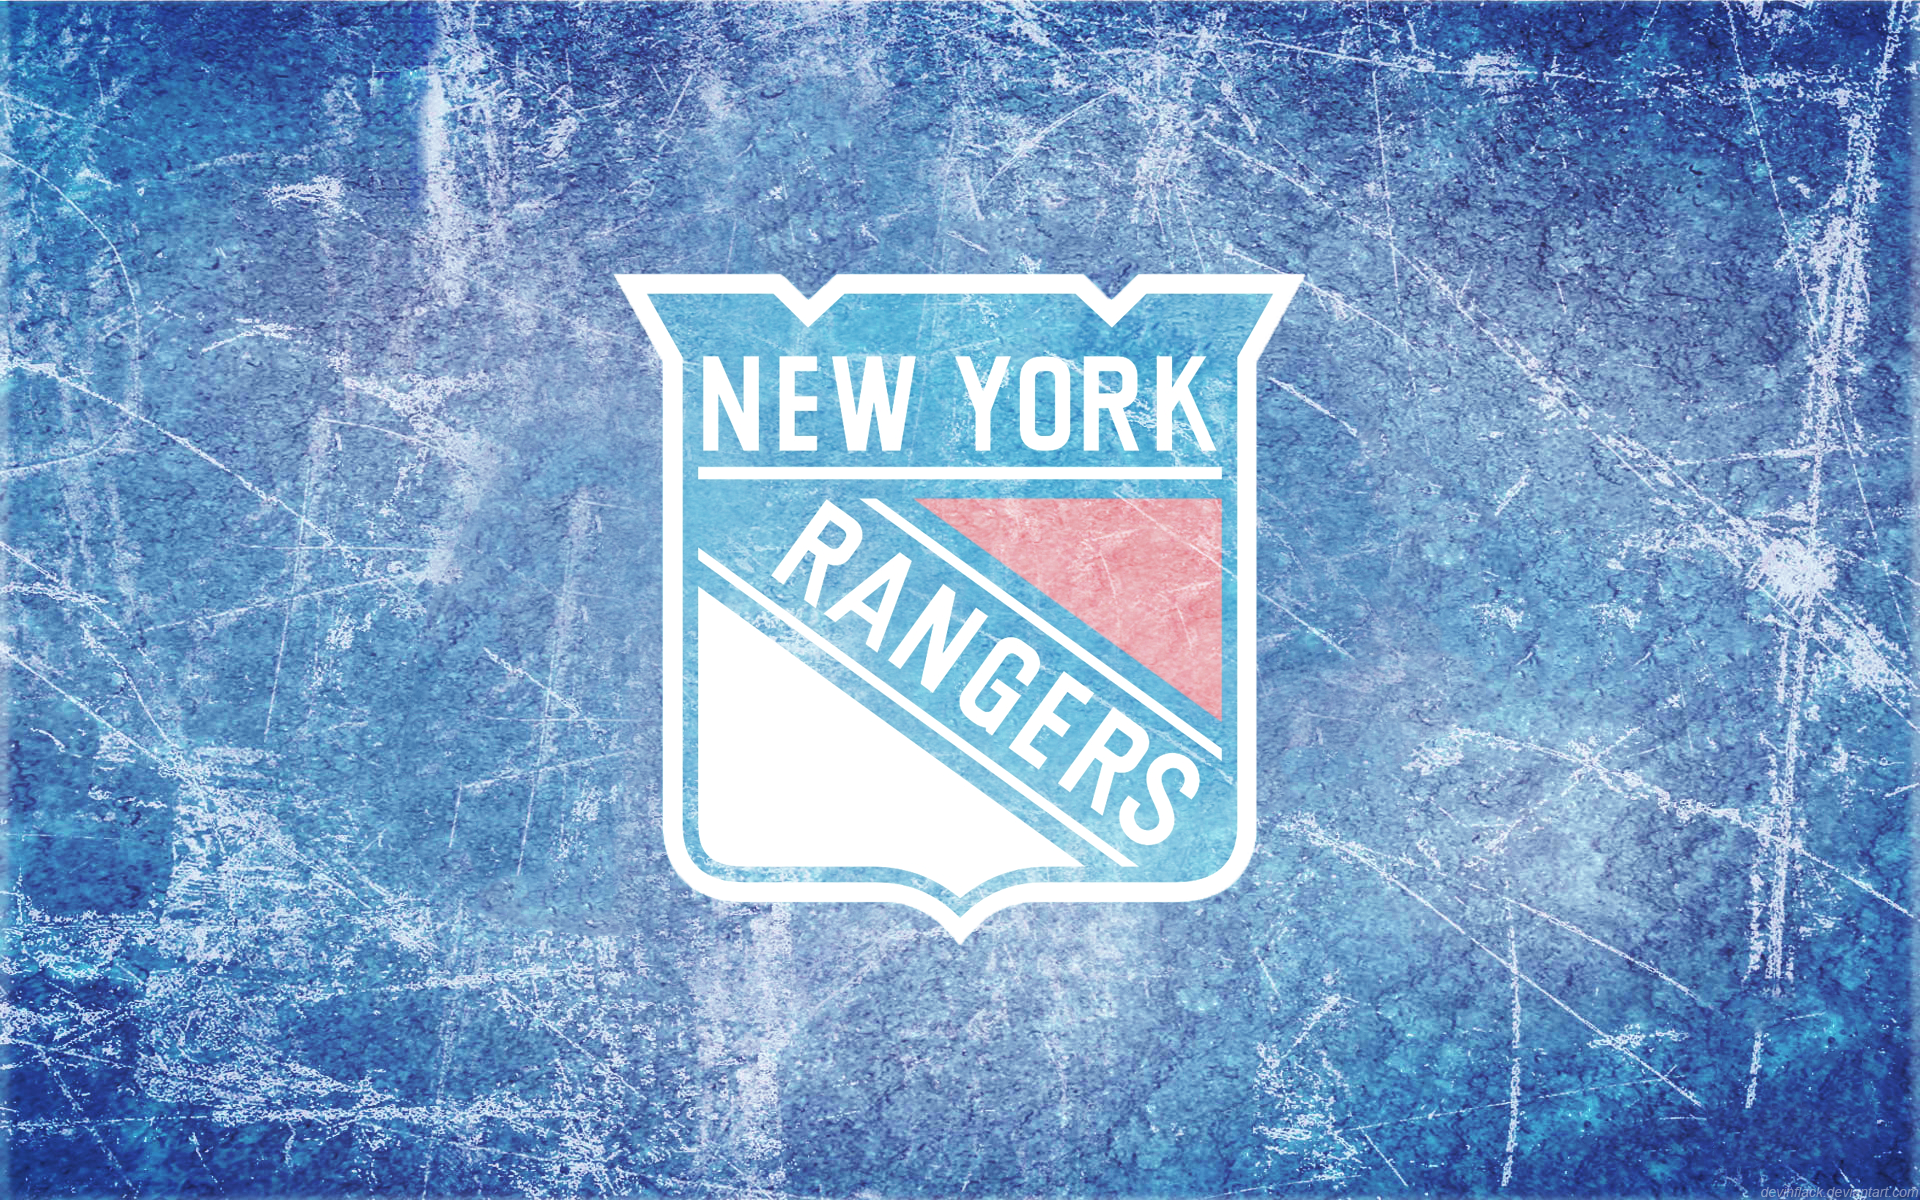 Hope you like this New York Rangers background in high resolution as much as we do!